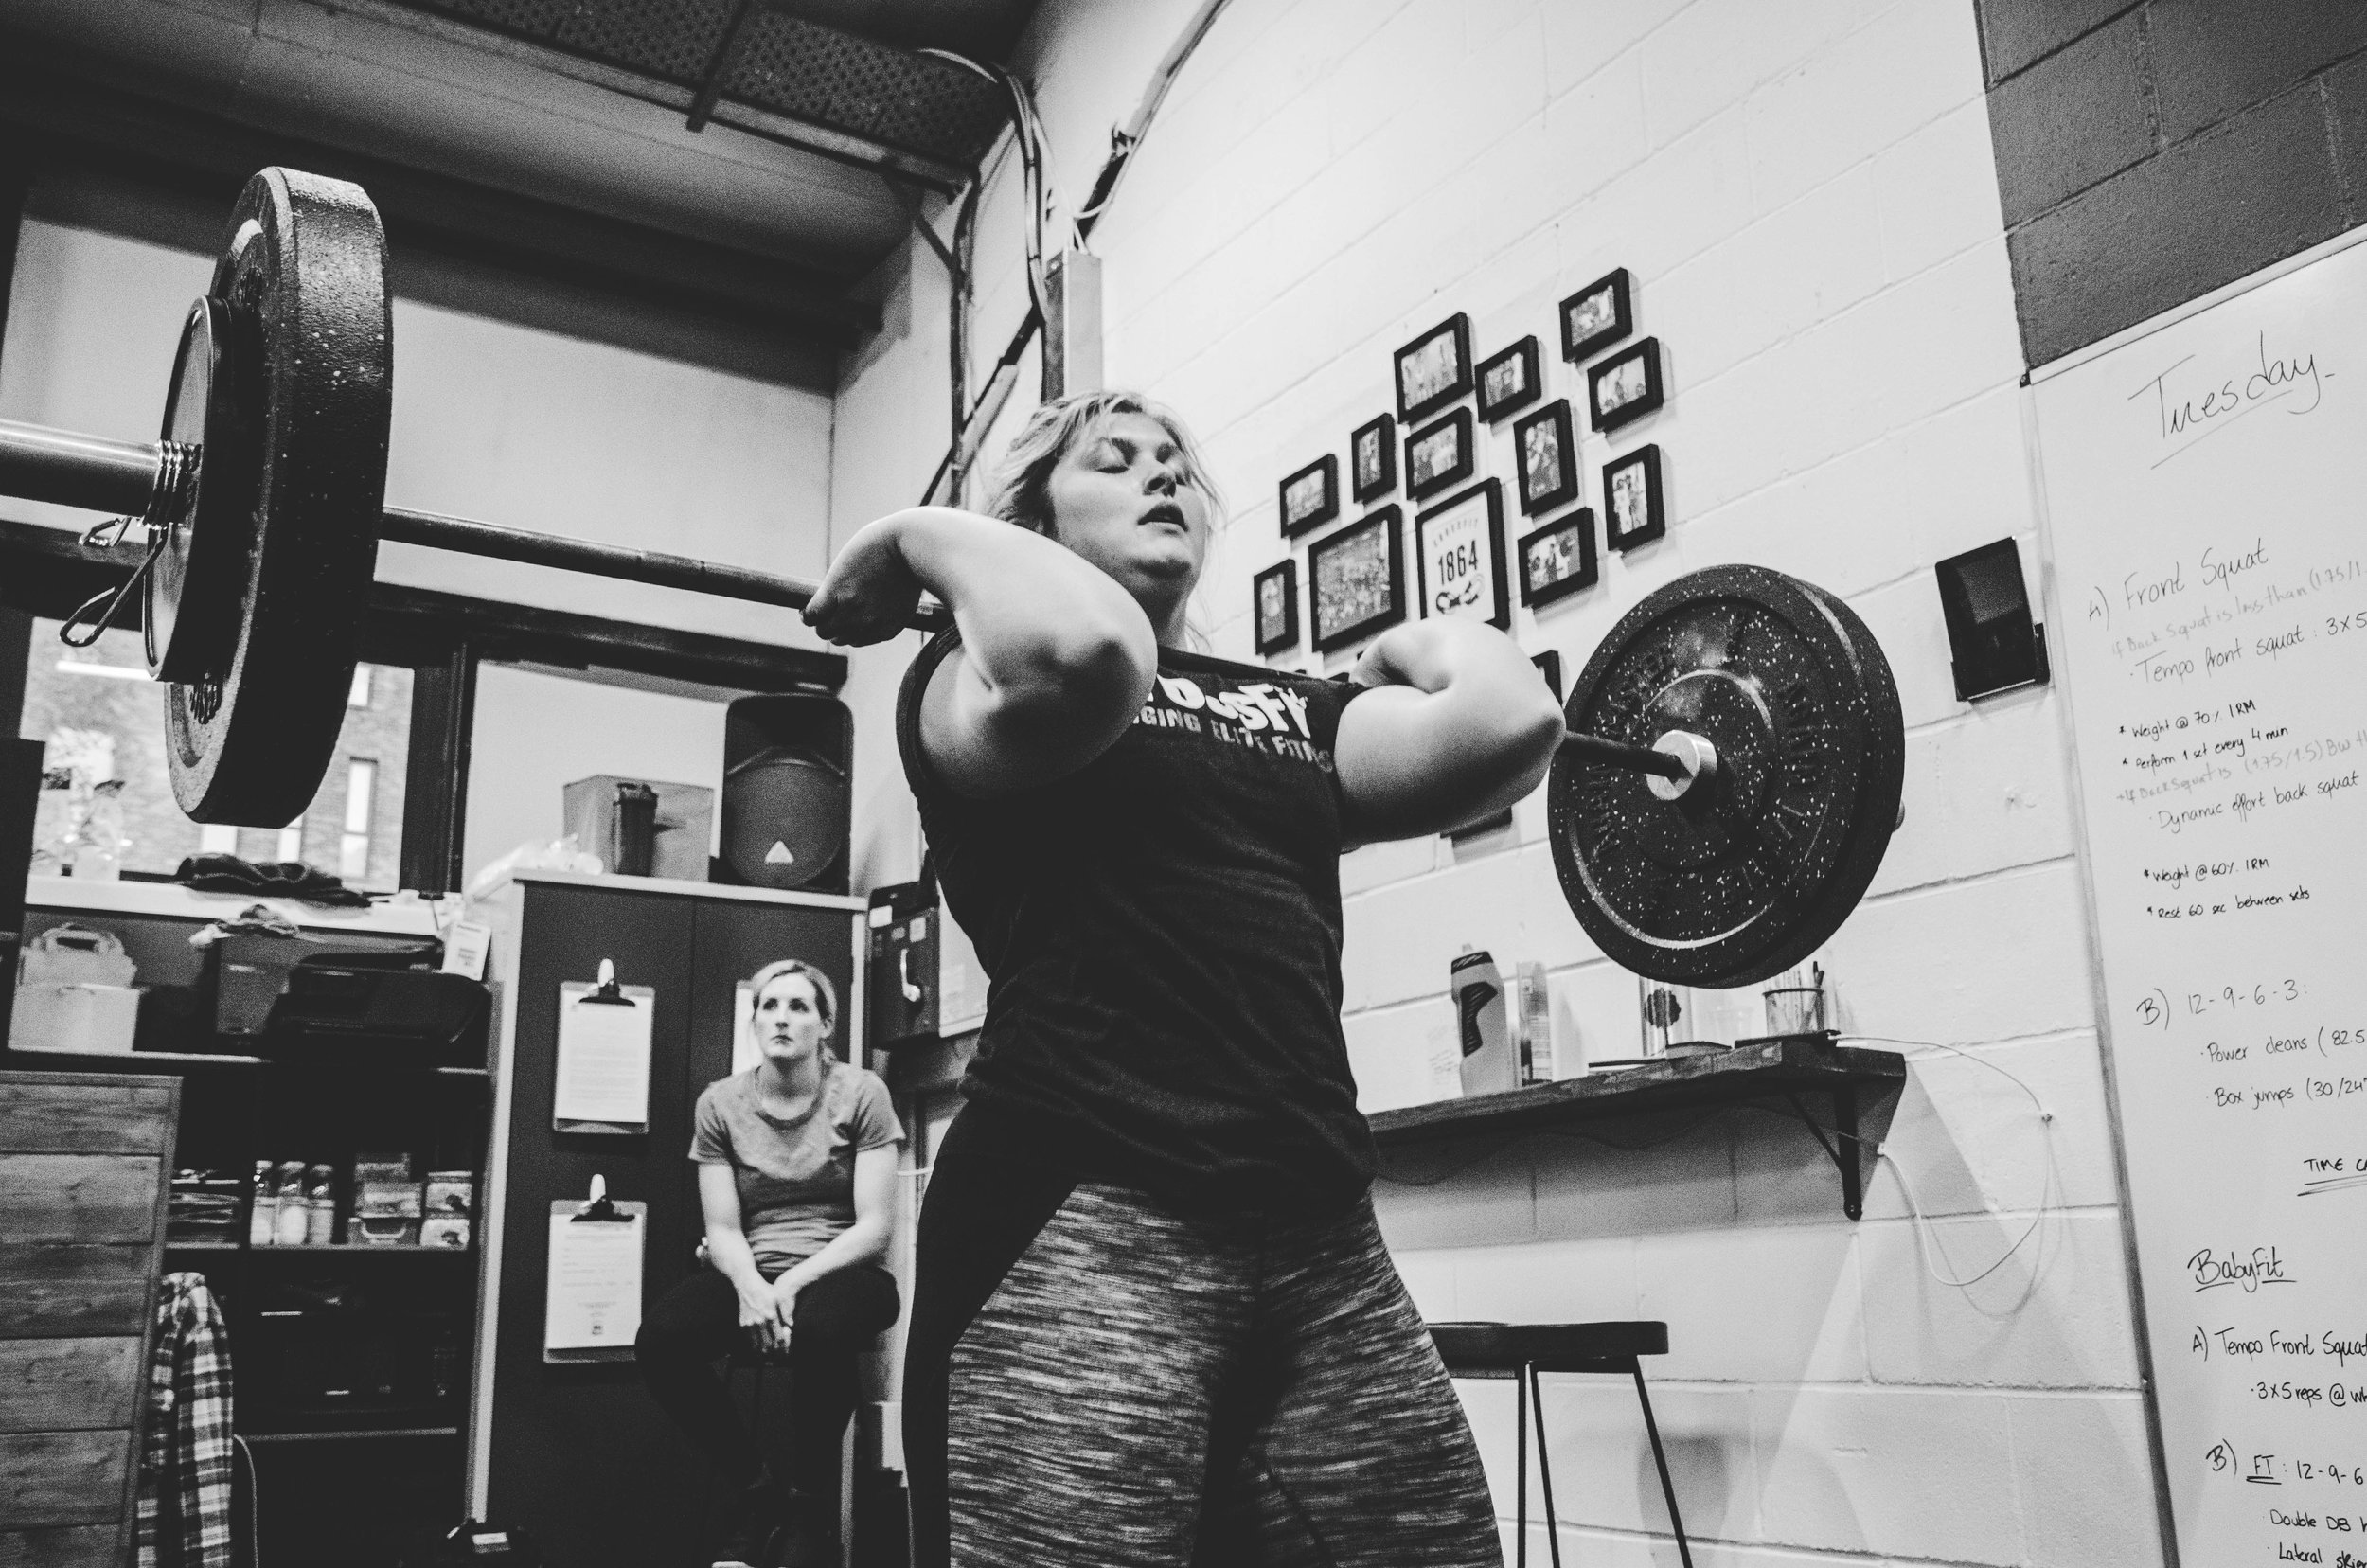 daisy-clean-crossfit.jpg